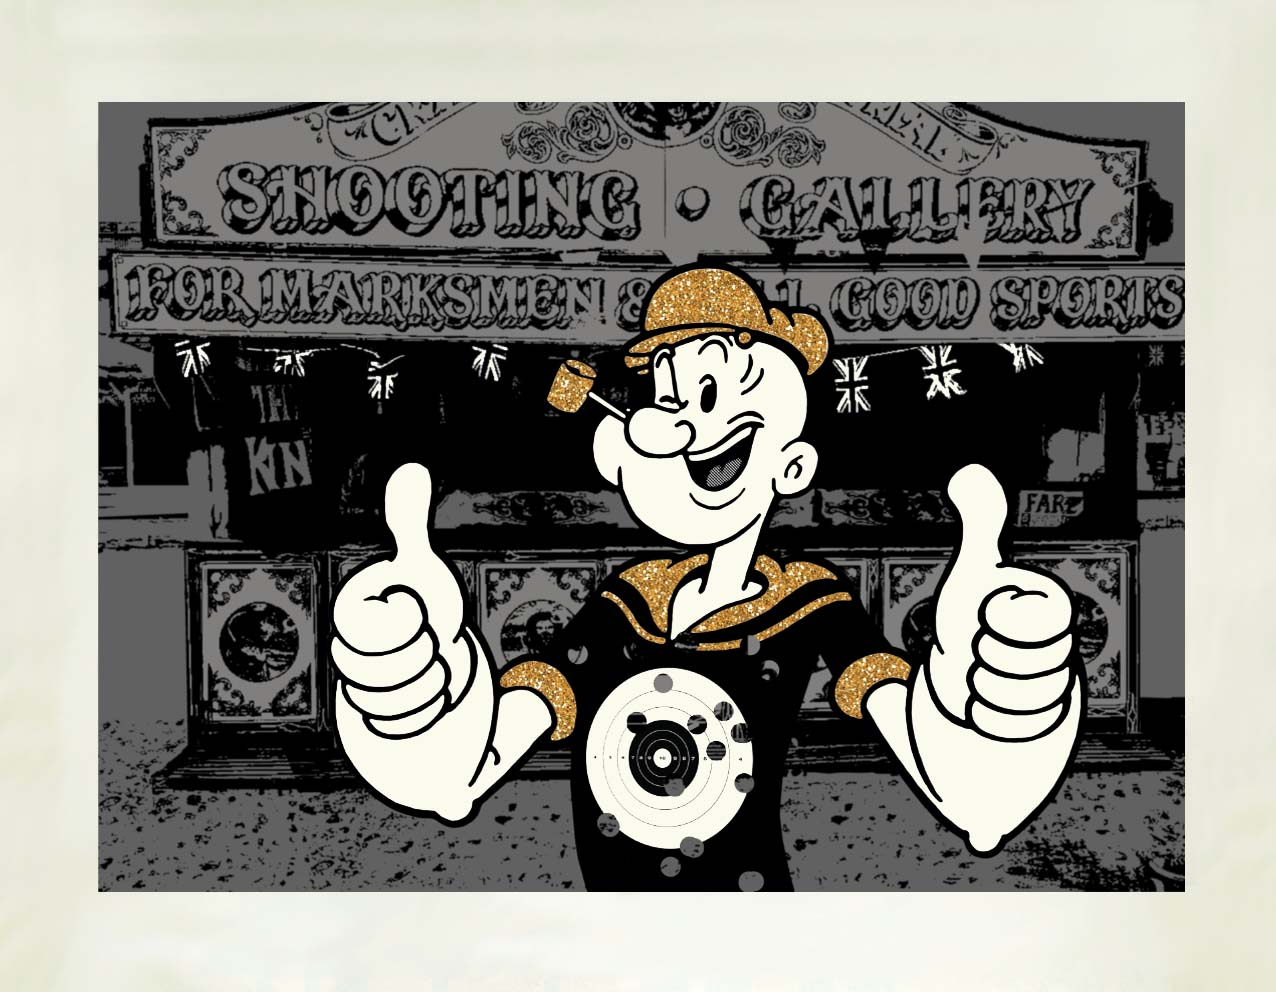 Popeye & The Shooting Gallery  Hand-embellished digital print on Hahnemuhle paper | 40 x 55cm Signed limited edition print of 50 | £295